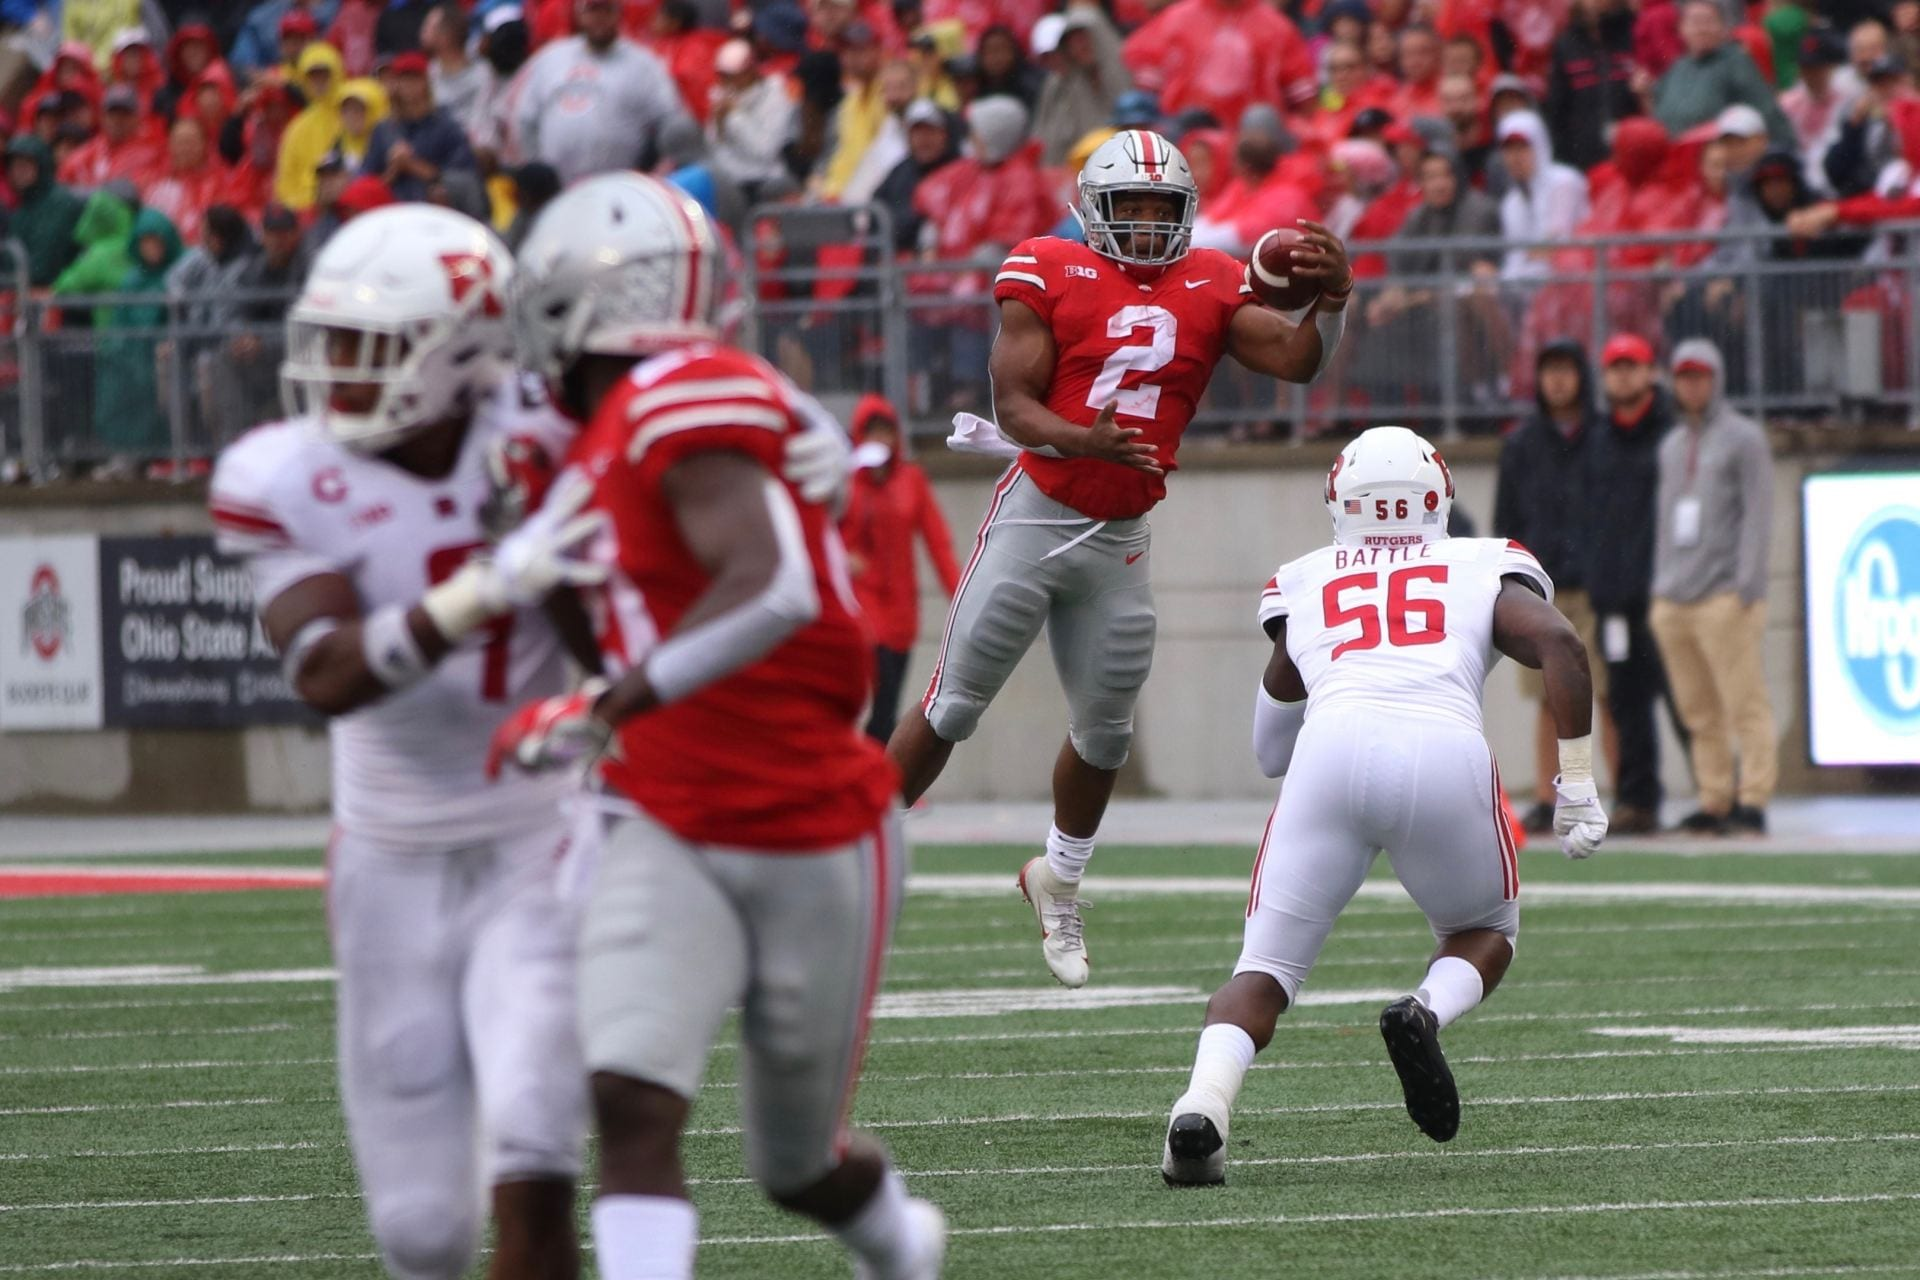 Ohio State sophomore running back J.K. Dobbins (2) catches the ball with  his left hand in the second quarter of the game against Rutgers on Sept. 8. adf2ce47e